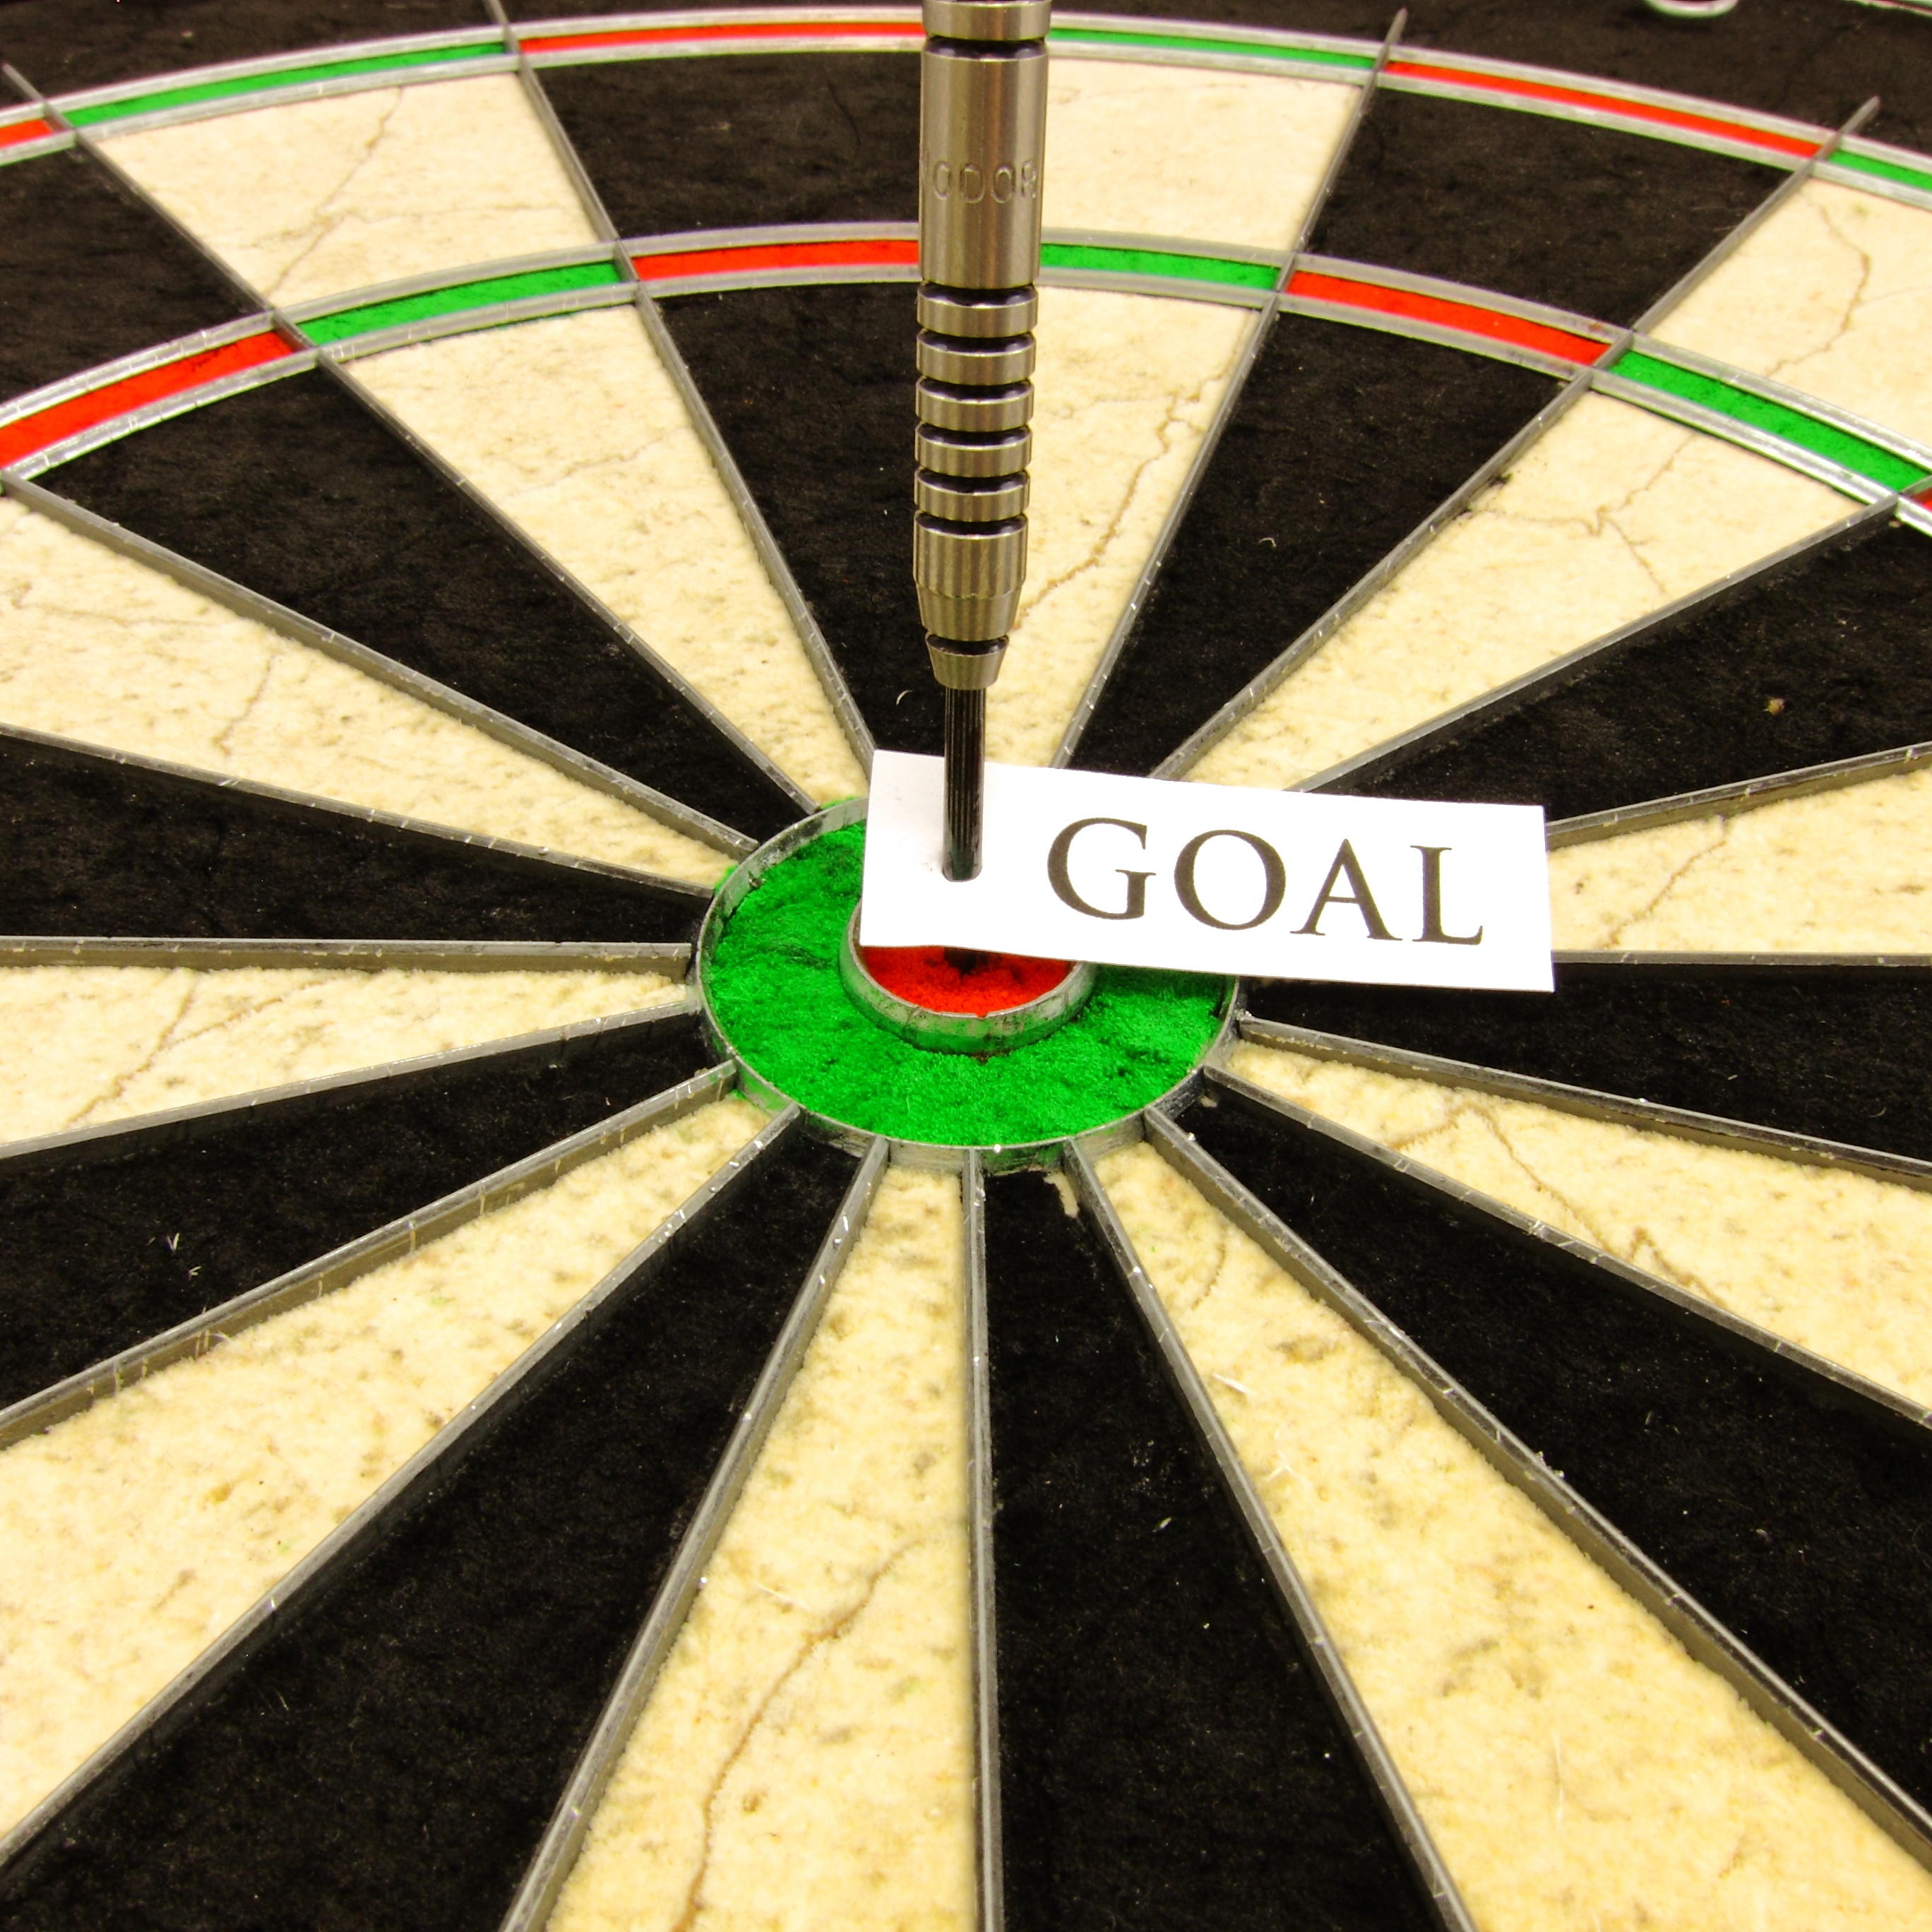 Themed photo 'Reaching your goal via a bullseye'